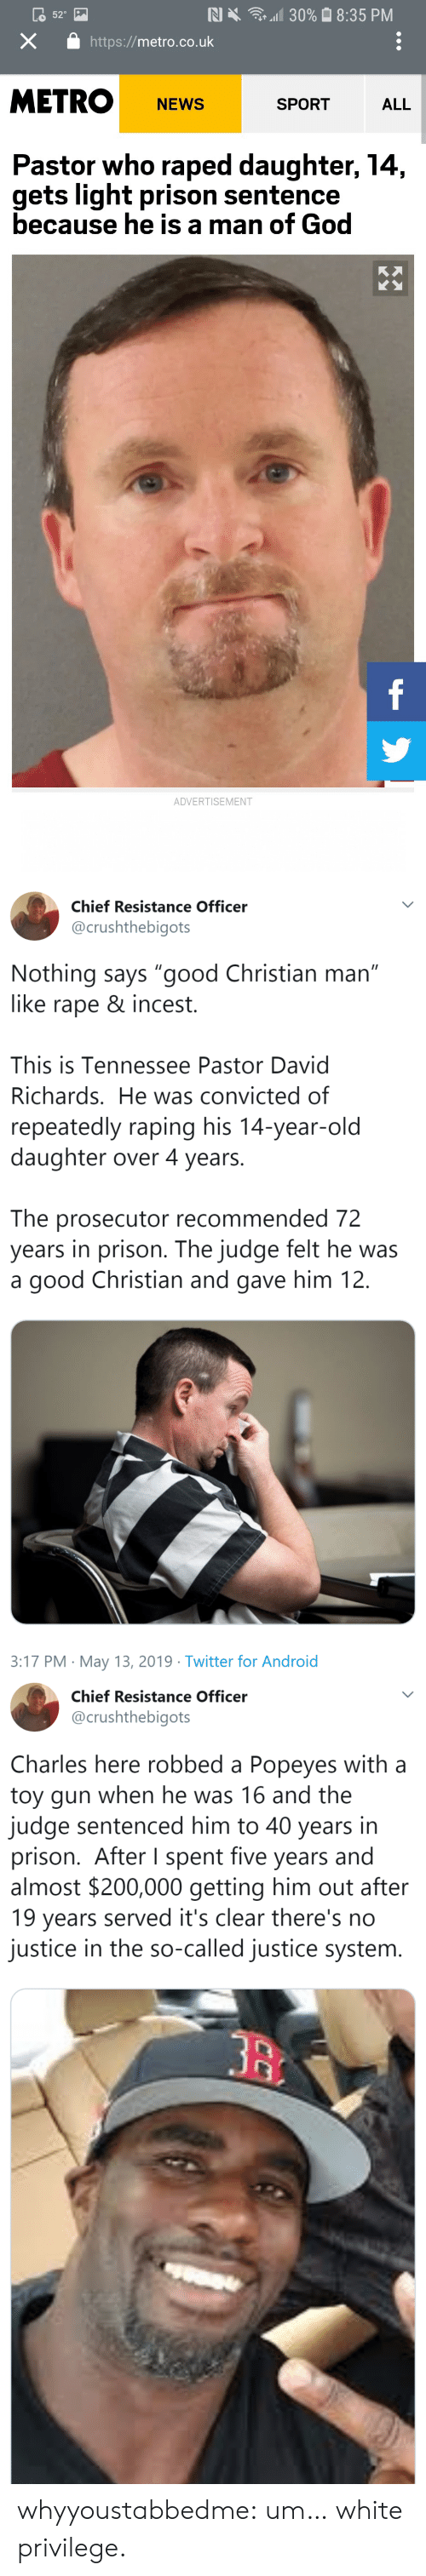 "Android, God, and News: 30% 8:35 PM  N X  52  X  http://metro.co.uk  METRO  SPORT  NEWS  ALL  Pastor who raped daughter, 14,  gets light prison sentence  because he is a man of God  f  ADVERTISEMENT   Chief Resistance Officer  @crushthebigots  Nothing says ""good Christian man""  like rape & incest.  II  This is Tennessee Pastor David  Richards. He was convicted of  repeatedly raping his 14-year-old  daughter over 4 years.  The prosecutor recommended 72  years in prison. The judge felt he was  good Christian and gave him 12.  a  3:17 PM May 13, 2019 Twitter for Android   Chief Resistance Officer  @crushthebigots  Charles here robbed a Popeyes with a  toy gun when he was 16 and the  judge sentenced him to 40 years in  prison. After I spent five years and  almost $200,000 getting him out after  19 years served it's clear there's no  justice in the so-called justice system. whyyoustabbedme:  um… white privilege."